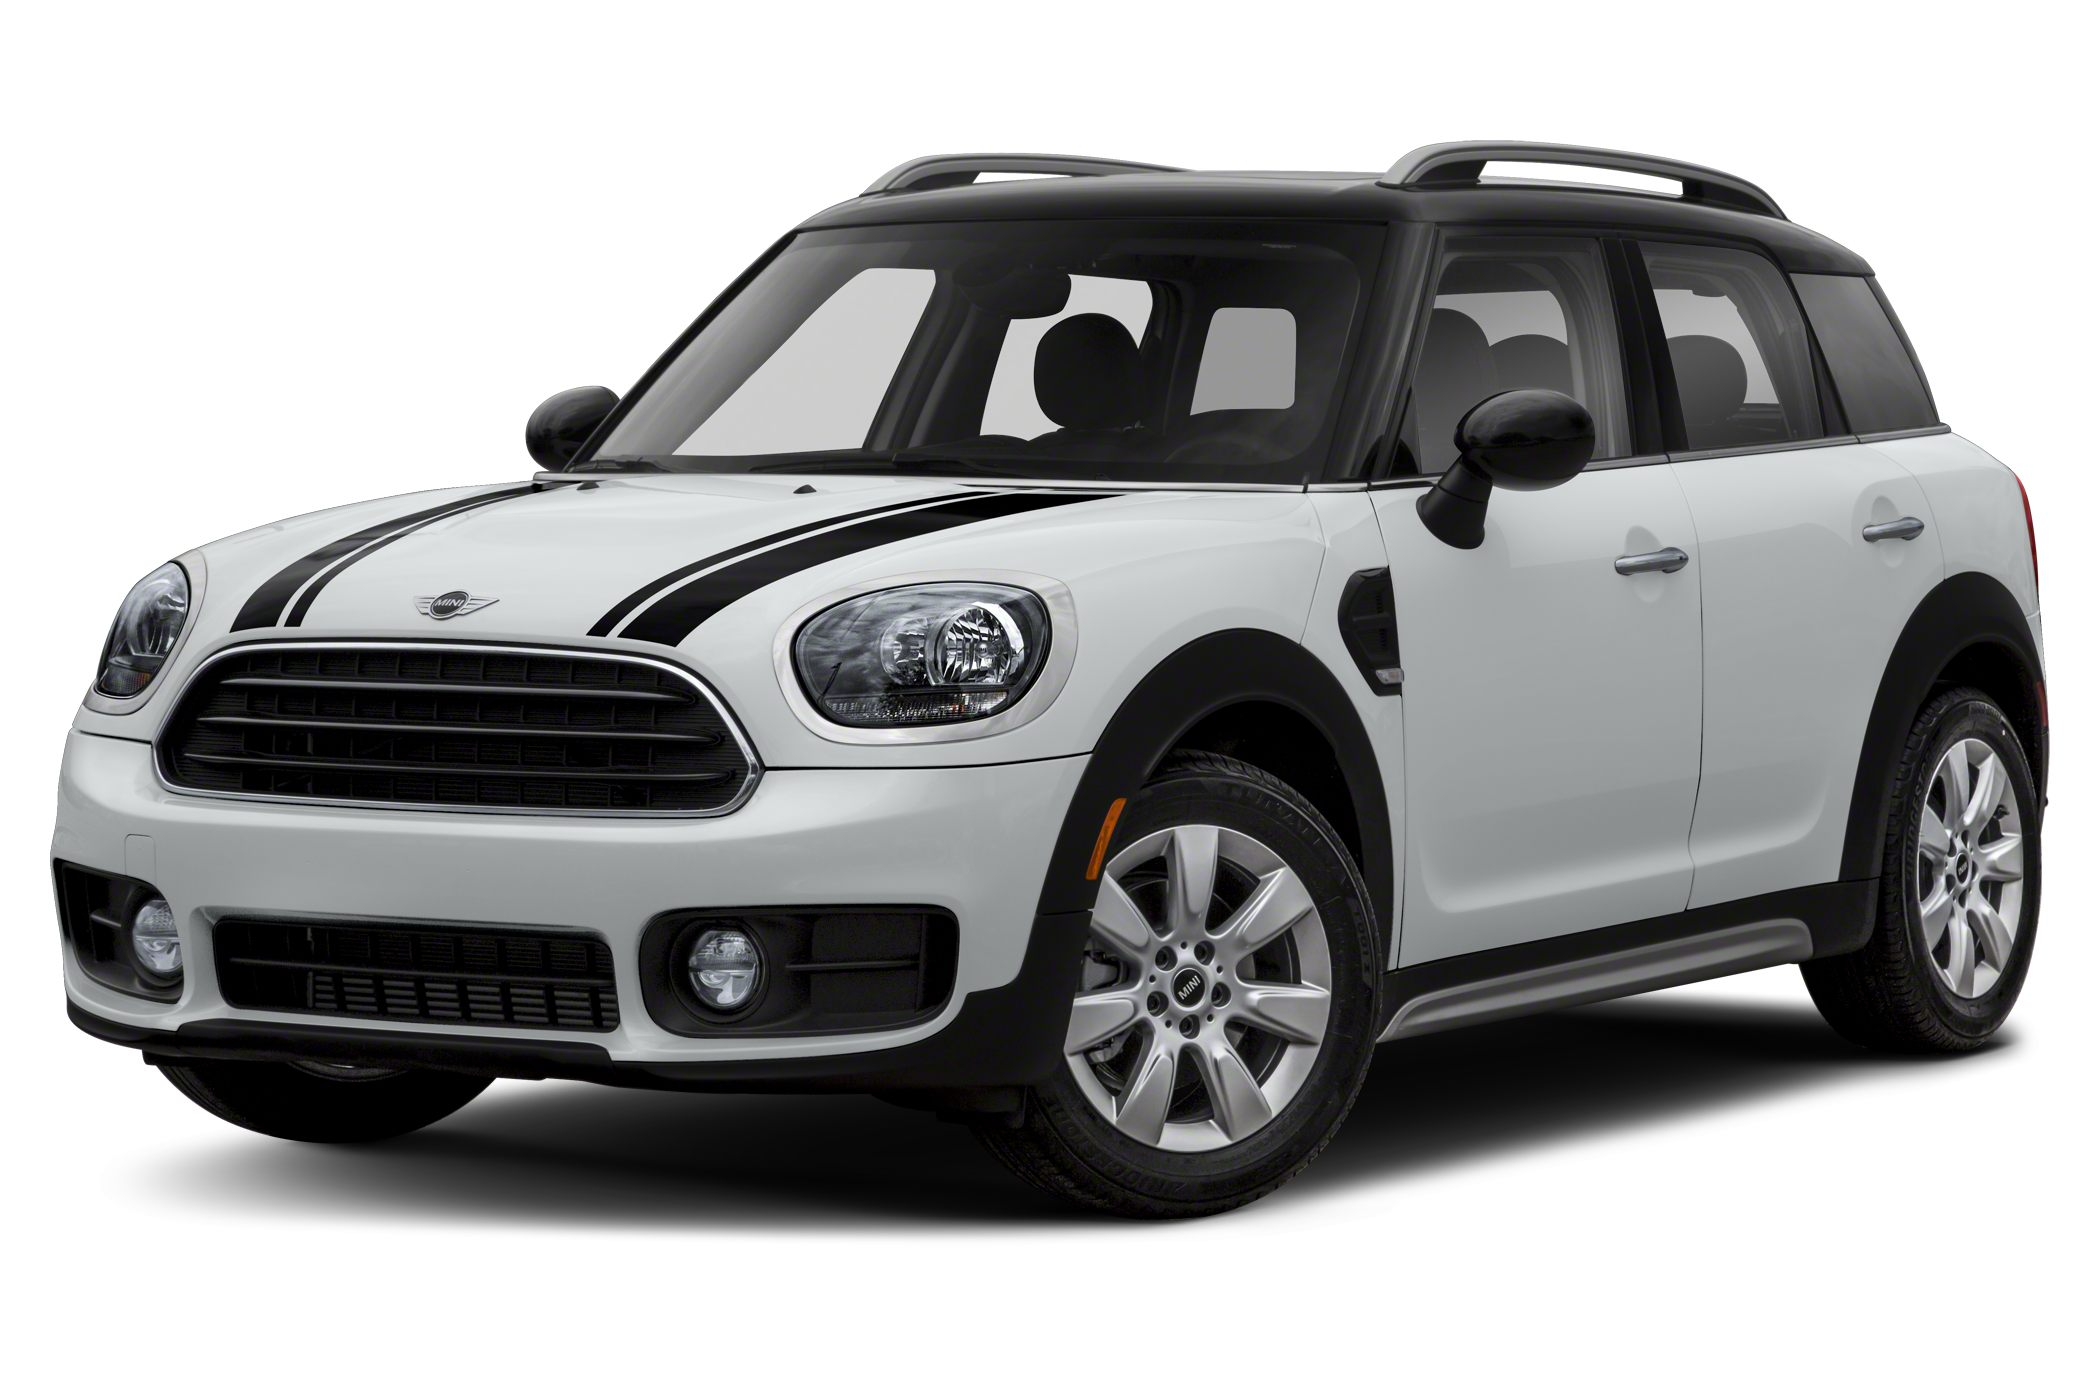 2017 mini countryman plug in hybrid la 2016 photo gallery. Black Bedroom Furniture Sets. Home Design Ideas